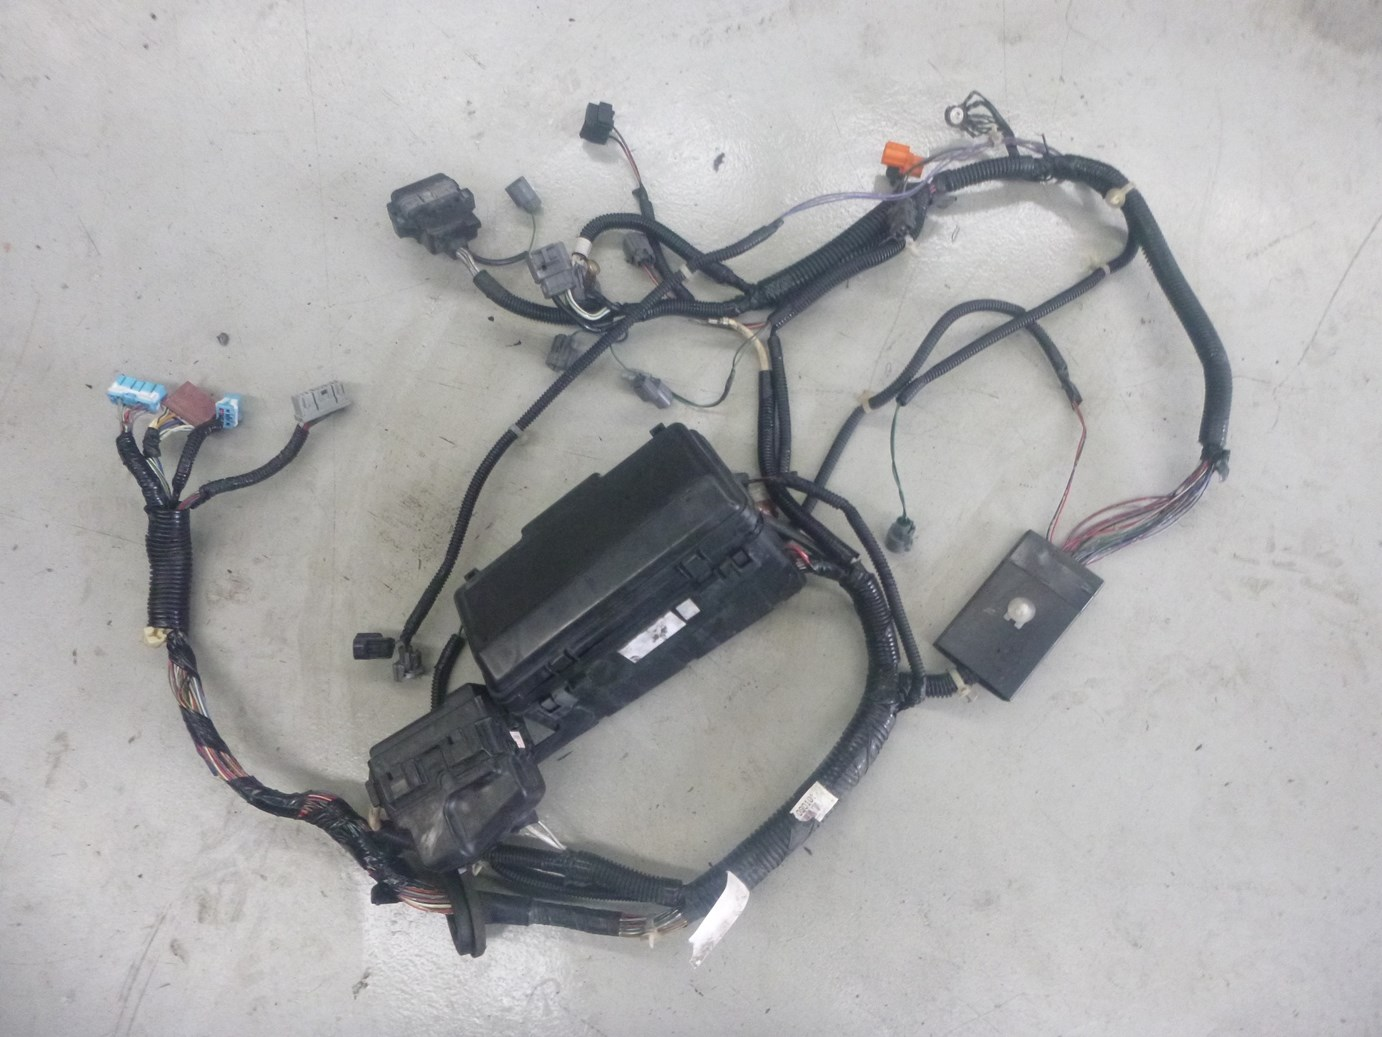 hight resolution of honda s2000 ap1 front lhs engine bay wiring loom harness 32120 s2a 0004